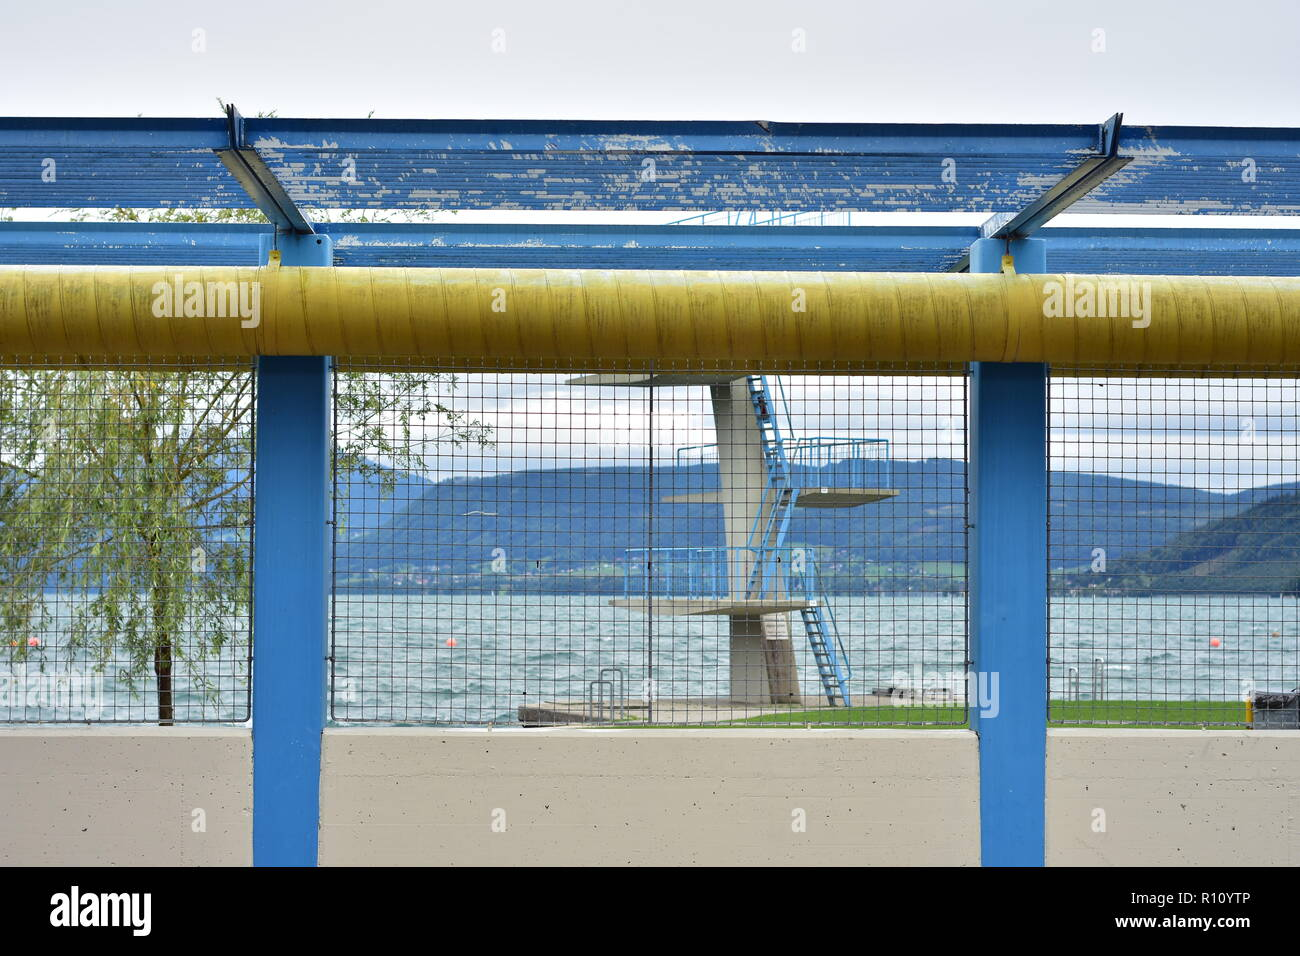 Concrete diving tower with metal staircase and railing behind wire fence on shore of lake Mondsee. - Stock Image